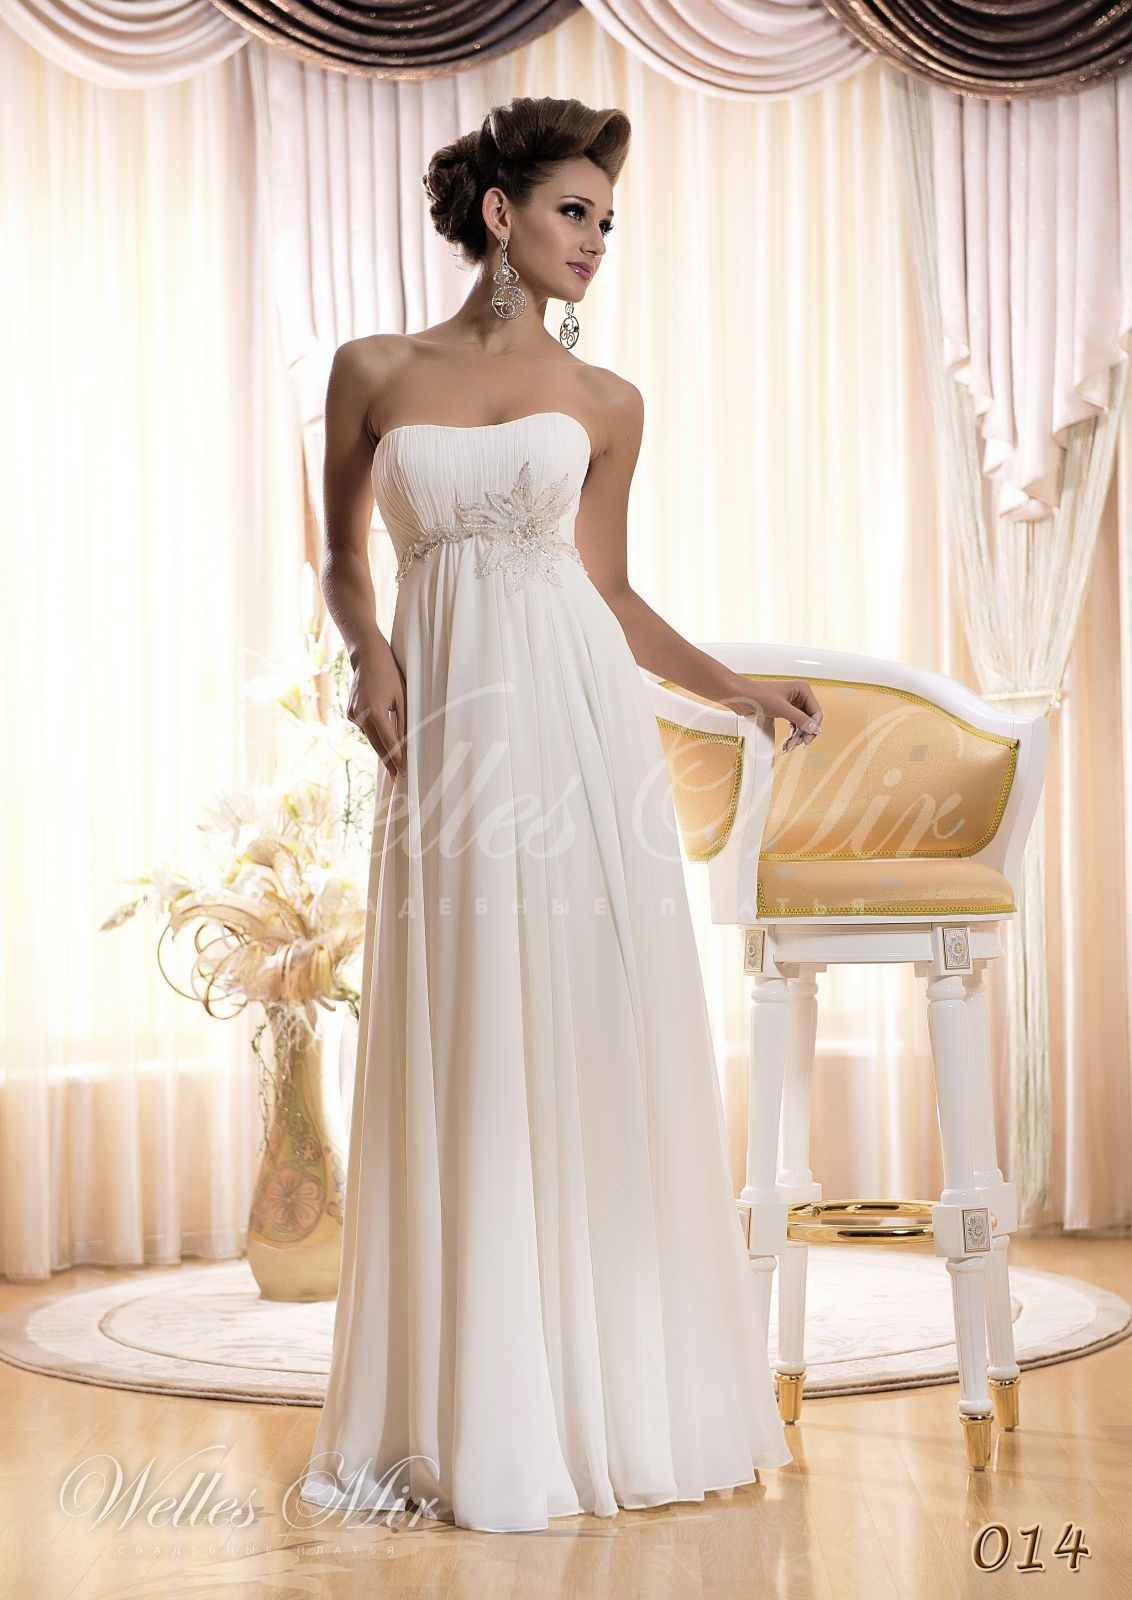 Wedding dresses 014